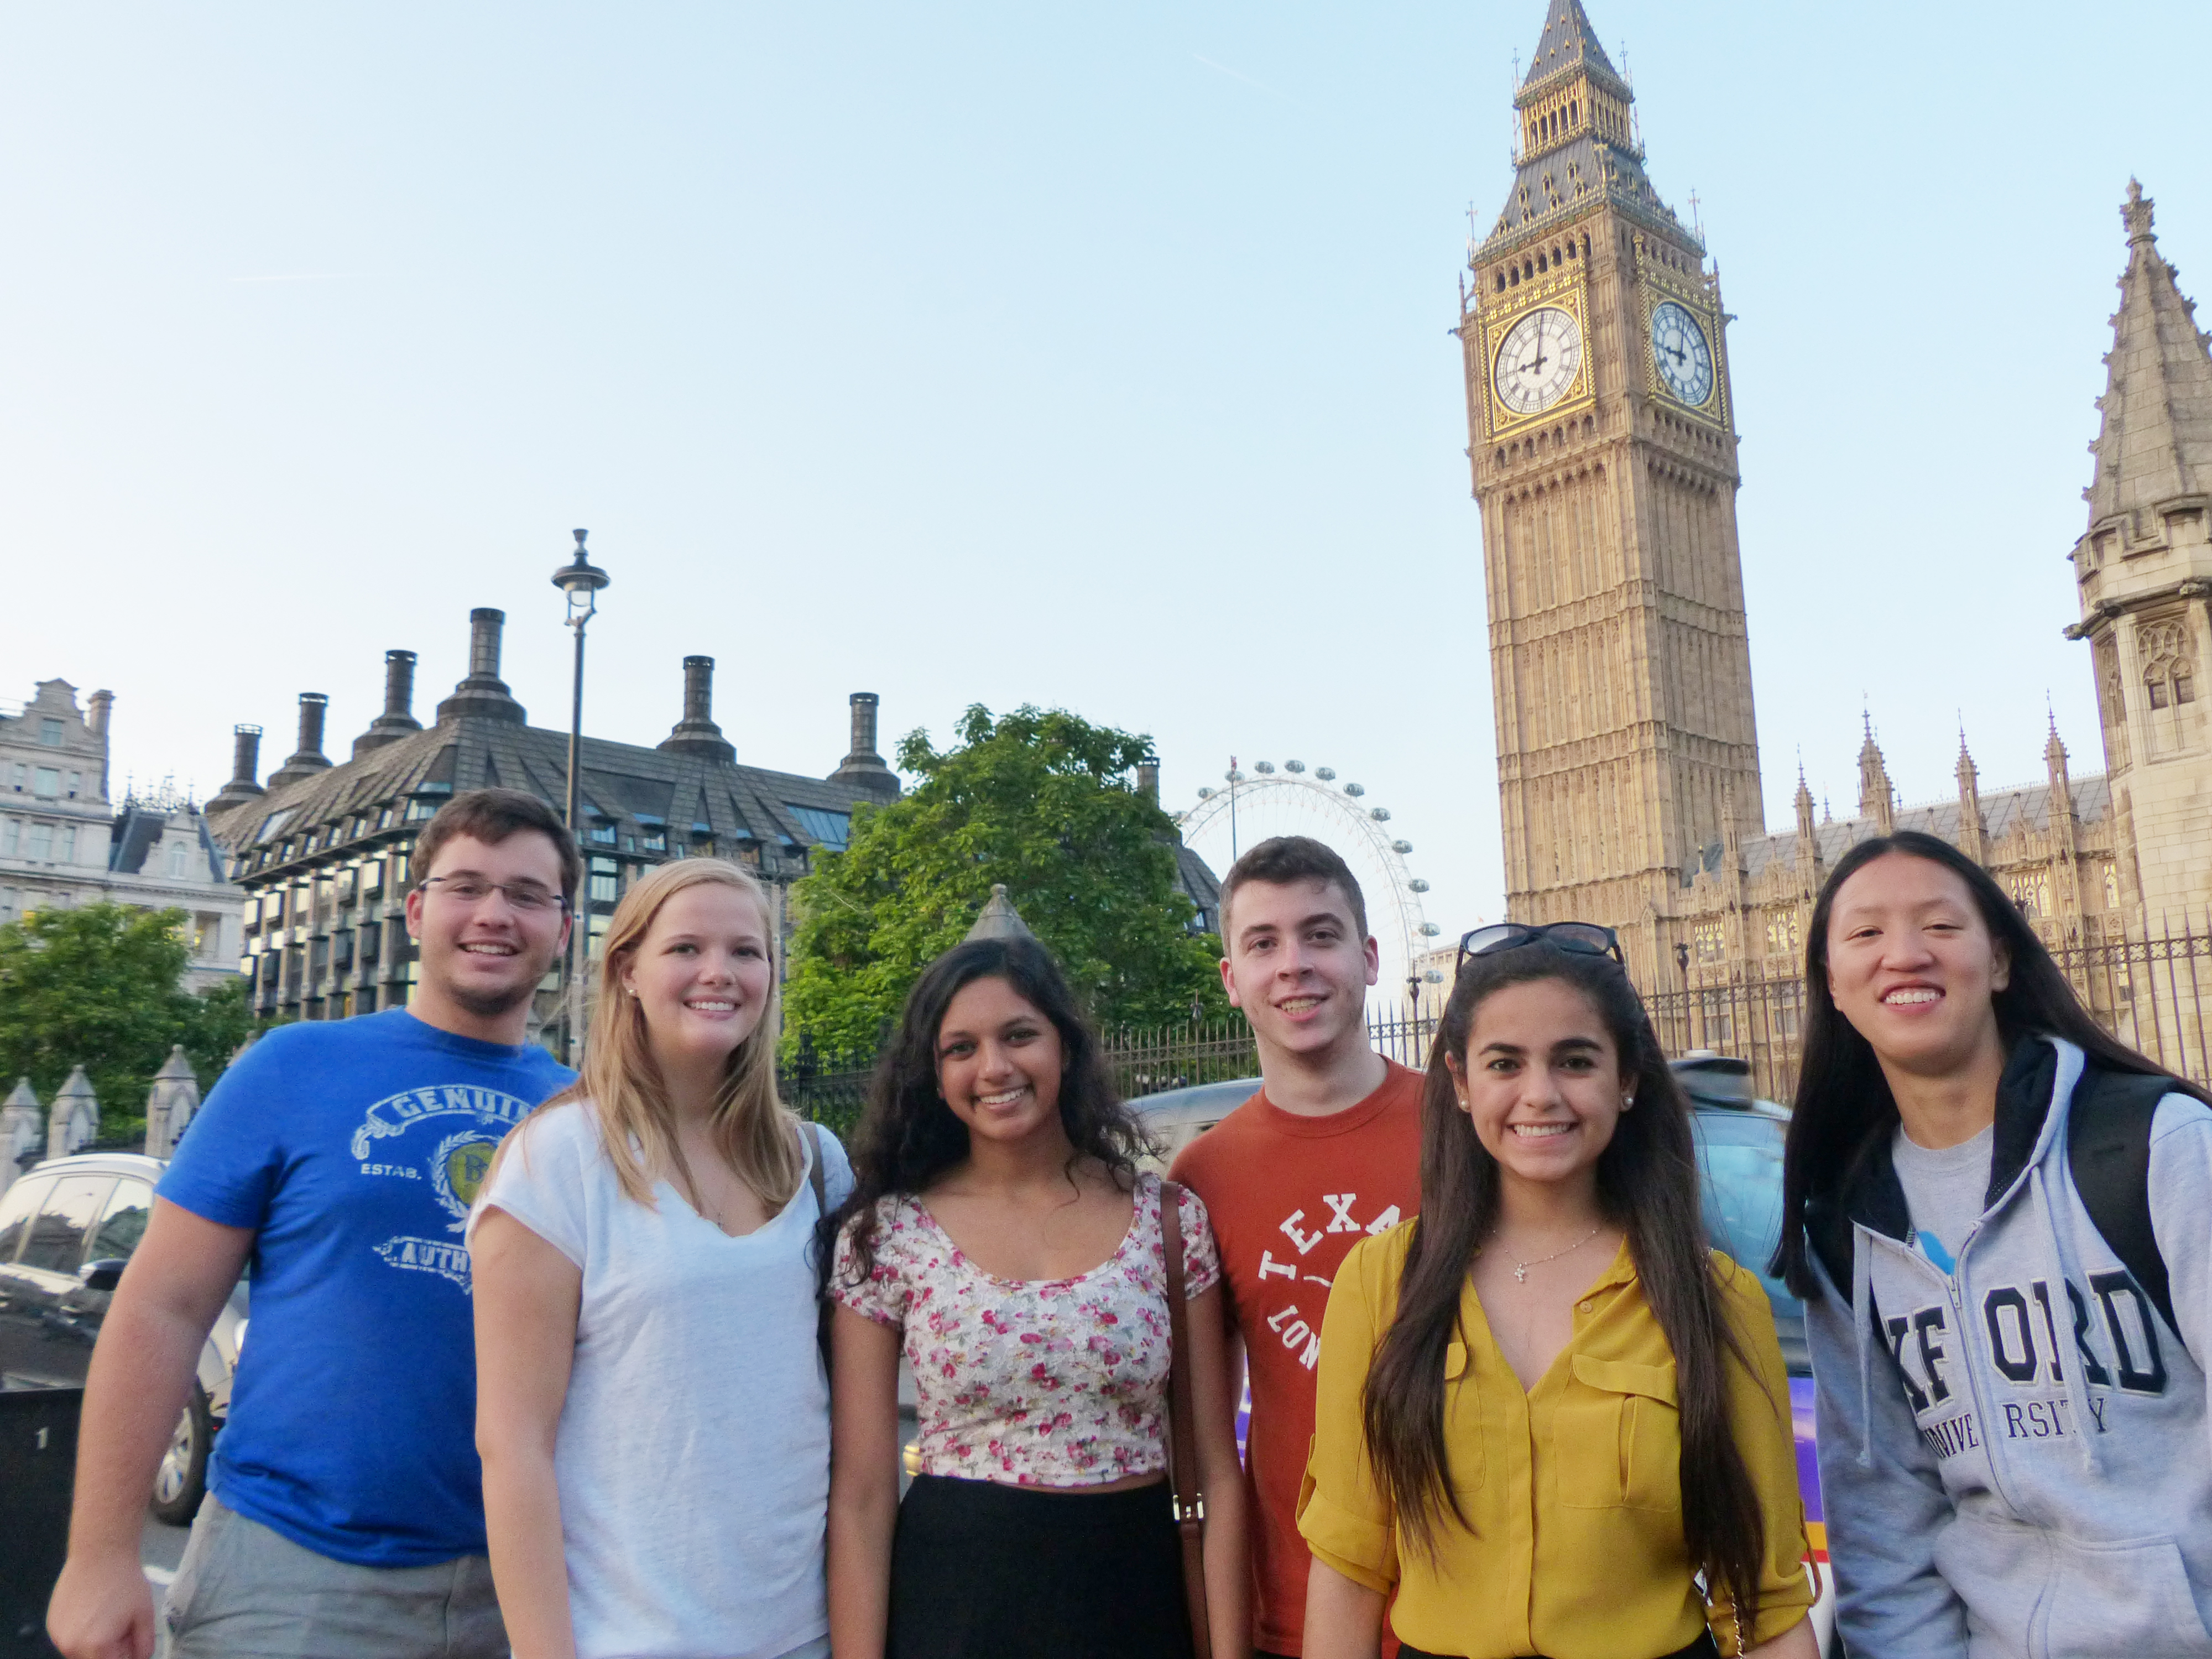 Summer Program - College Experience | Summer Discovery: City University London - International Business for Summer 2021